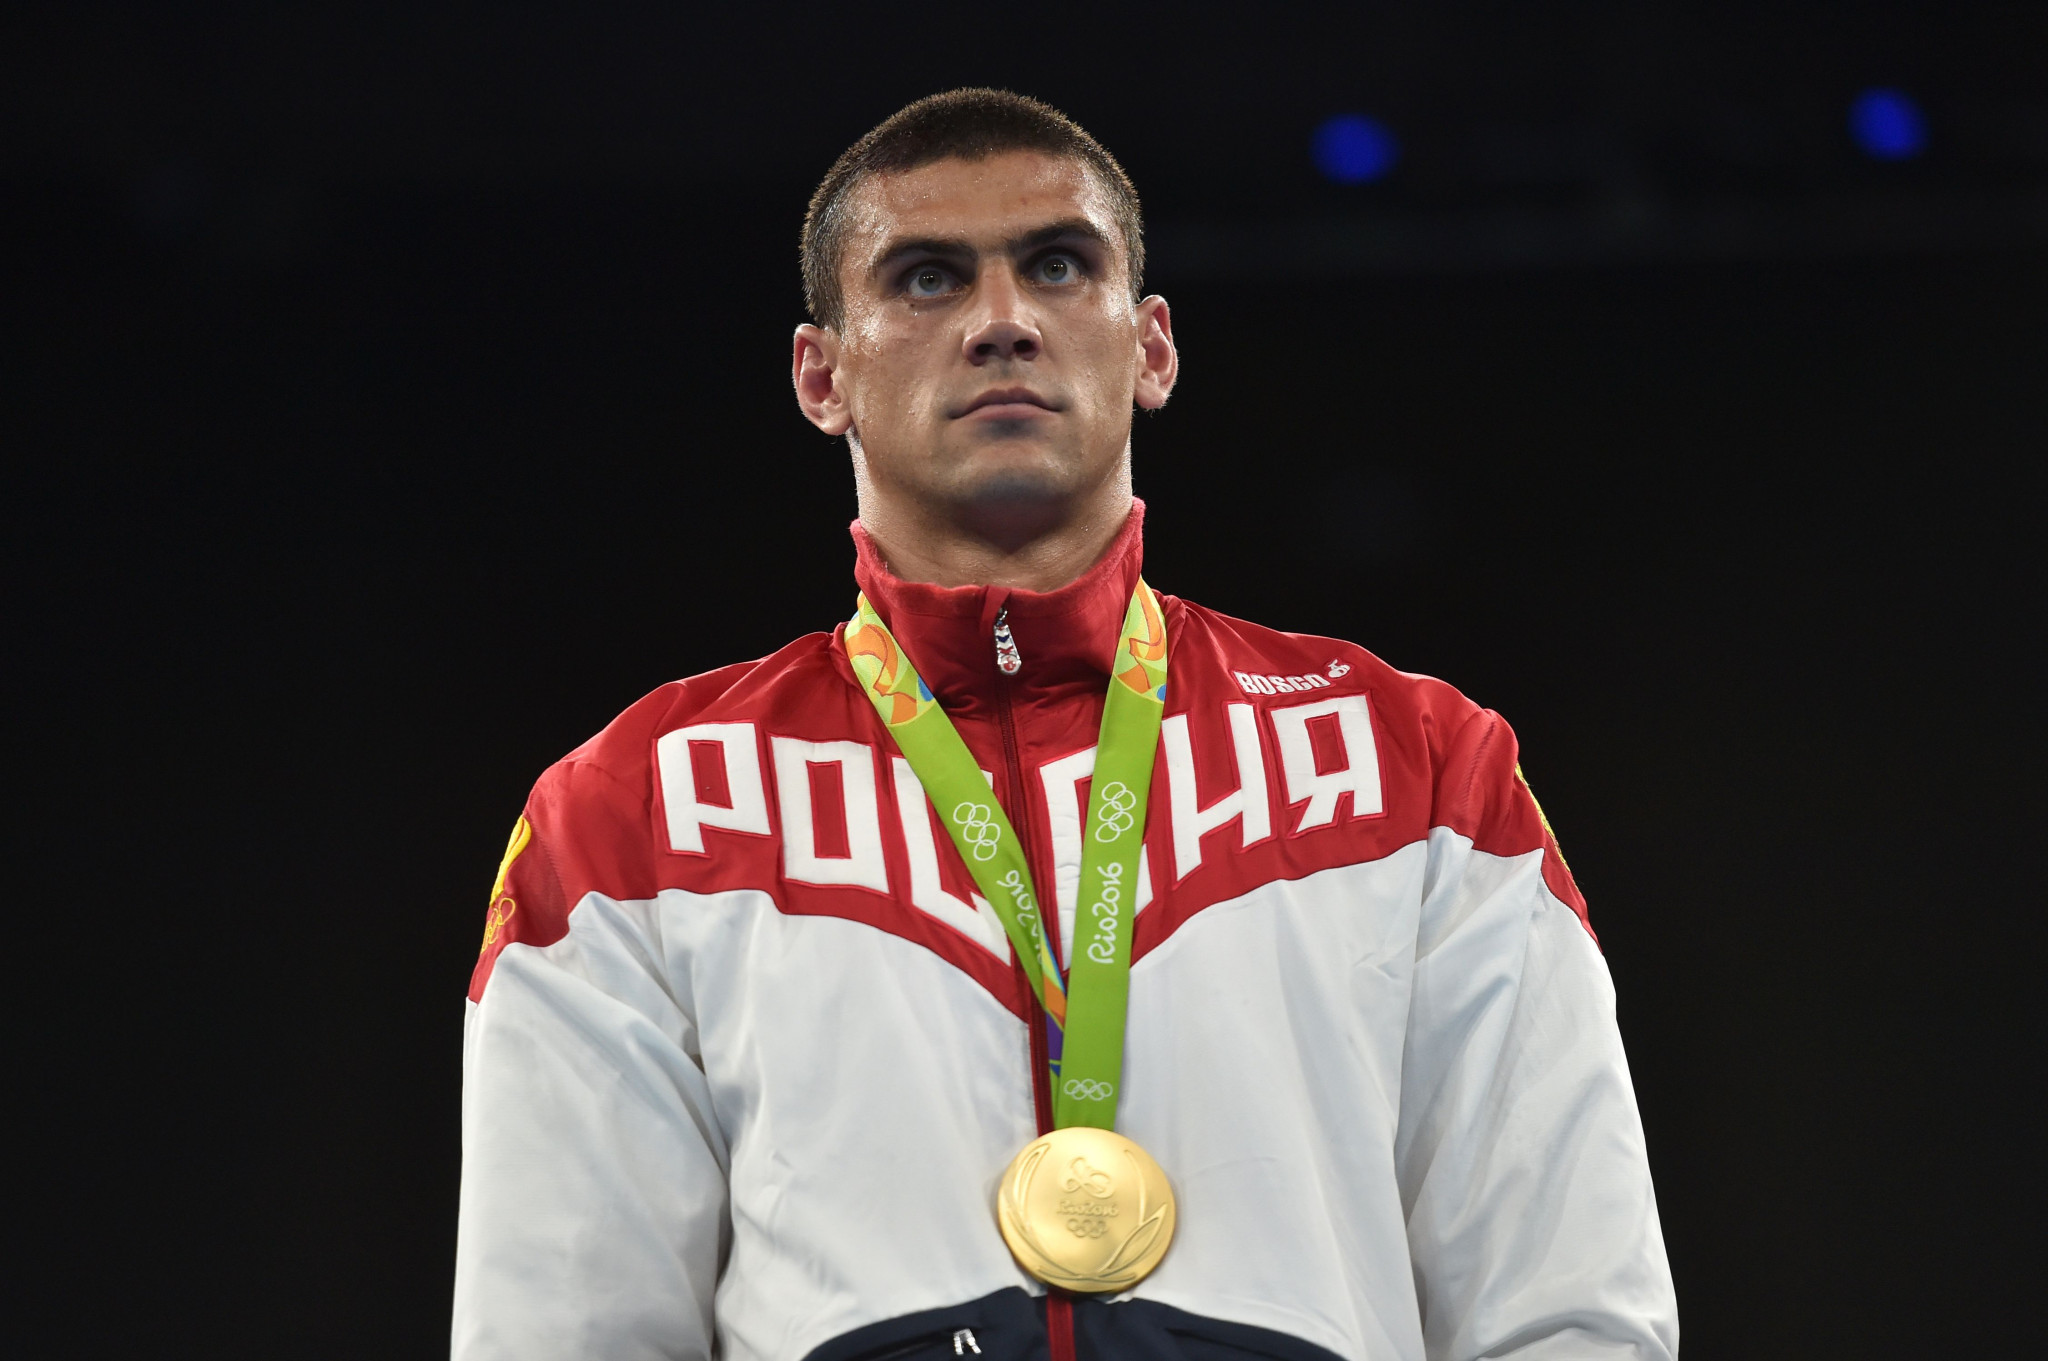 Olympic boxing champion Evgeny Tishchenko had to reject claims he had coronavirus ©Getty Images